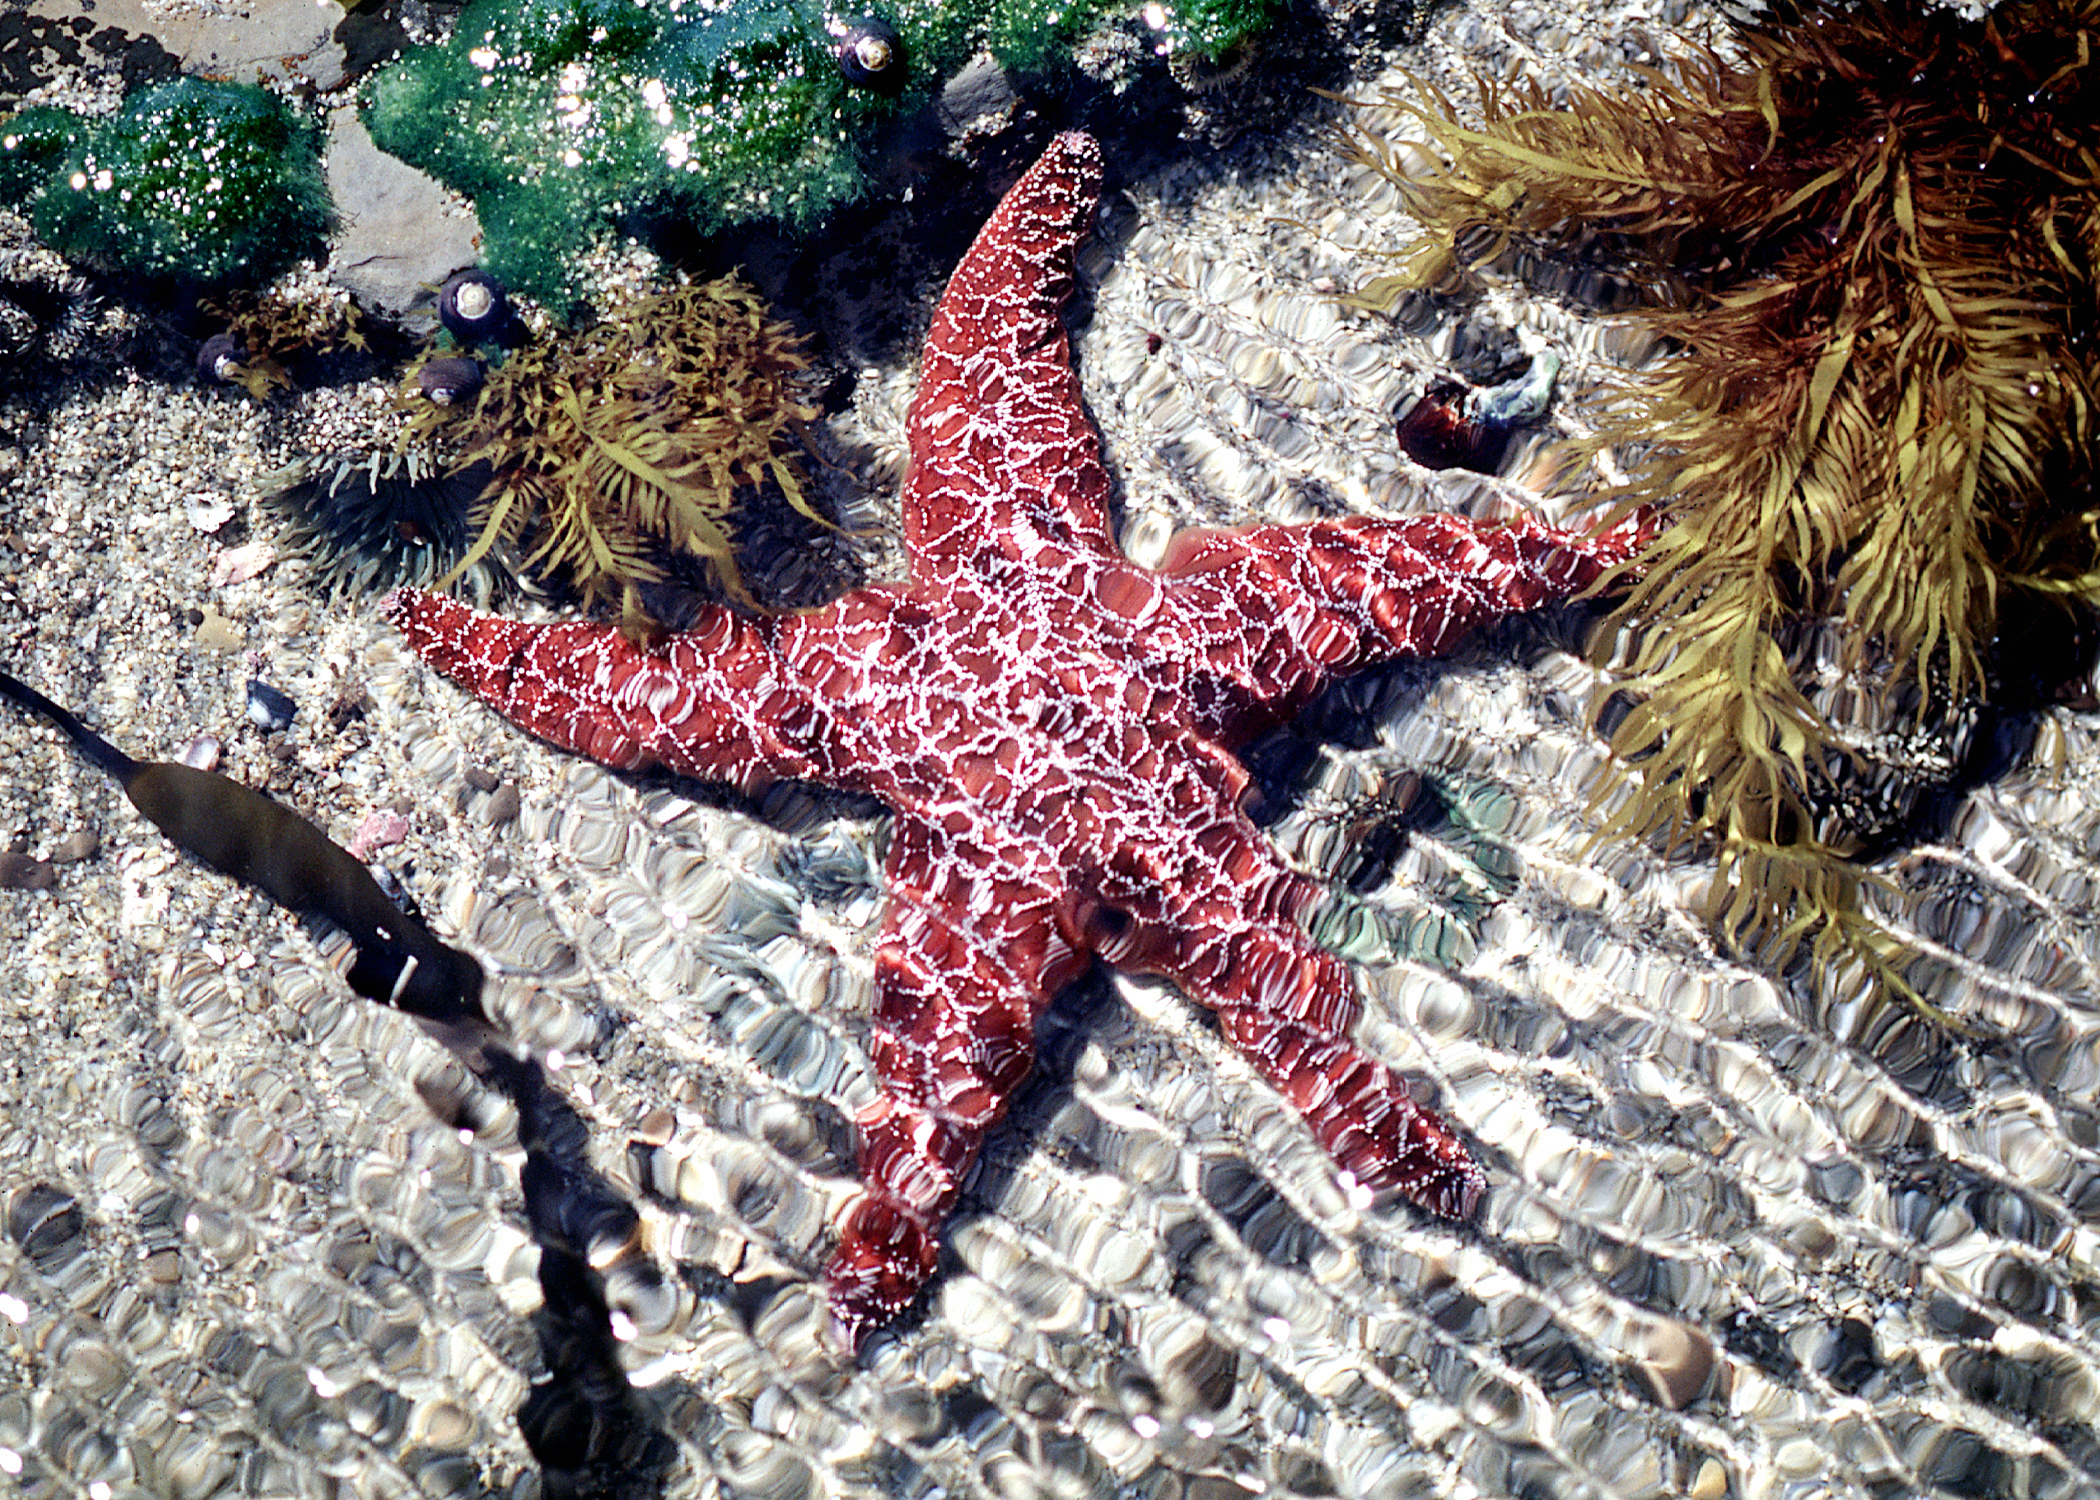 Sea Star in Tidepool